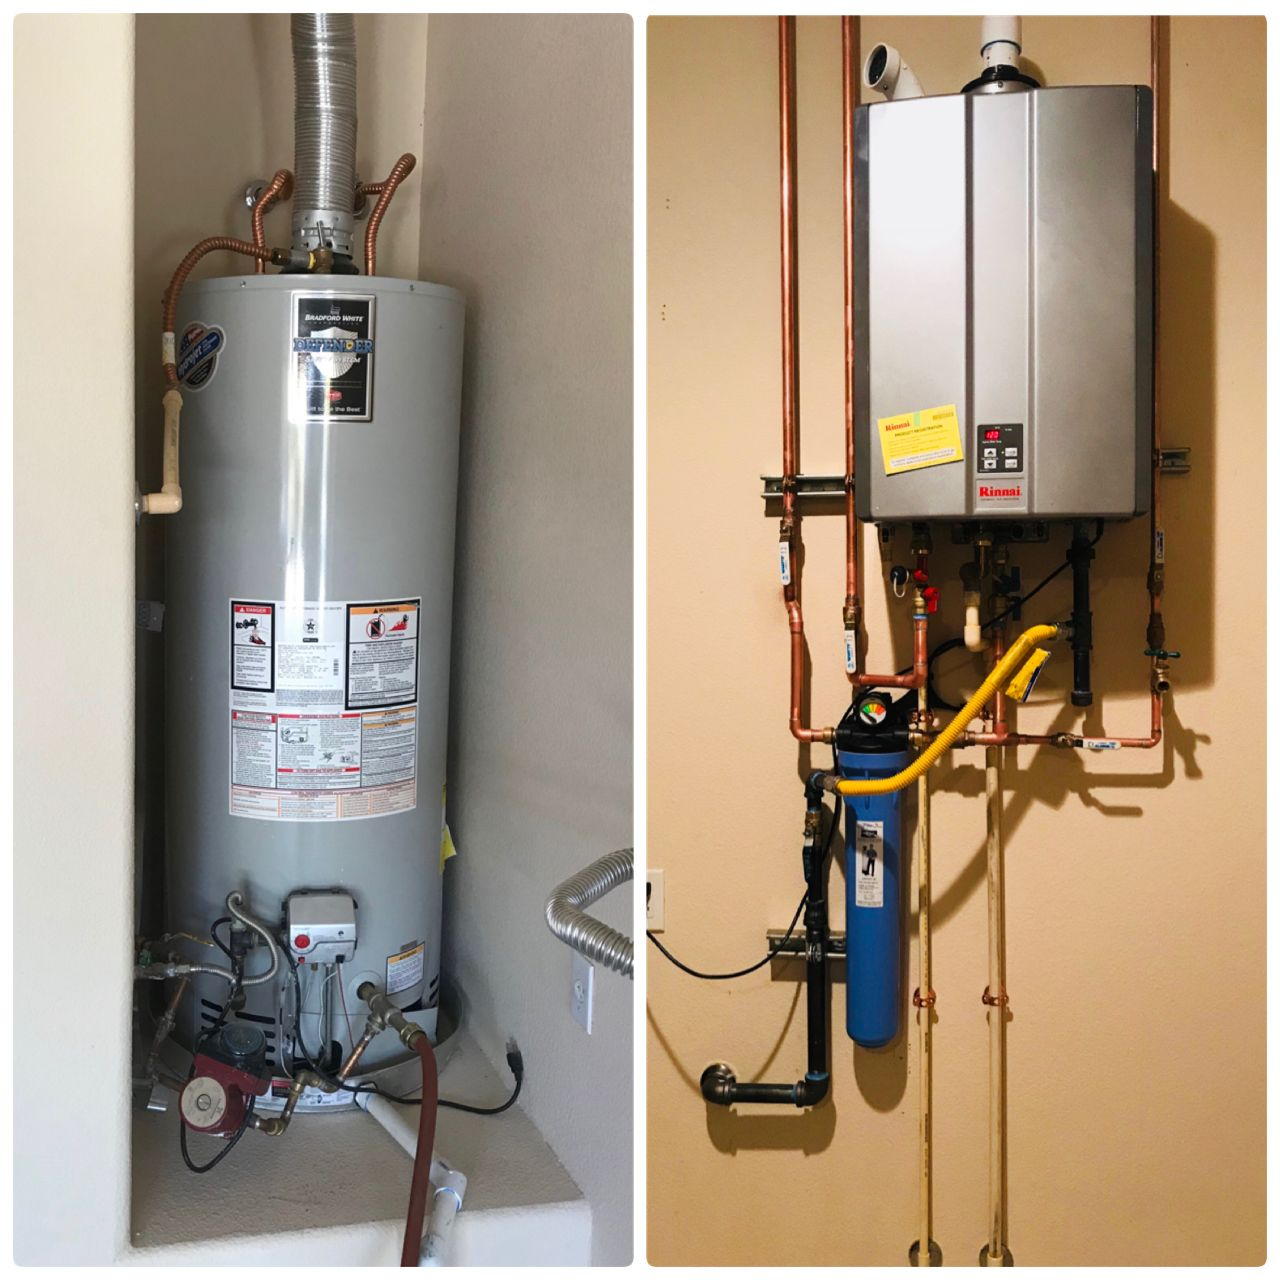 The Best Comparison Between A Regular Tank Water Heater To A Rinnai Tankless Get Your Endless Supply Of Hot Water E Tankless Water Heater Water Heater Heater